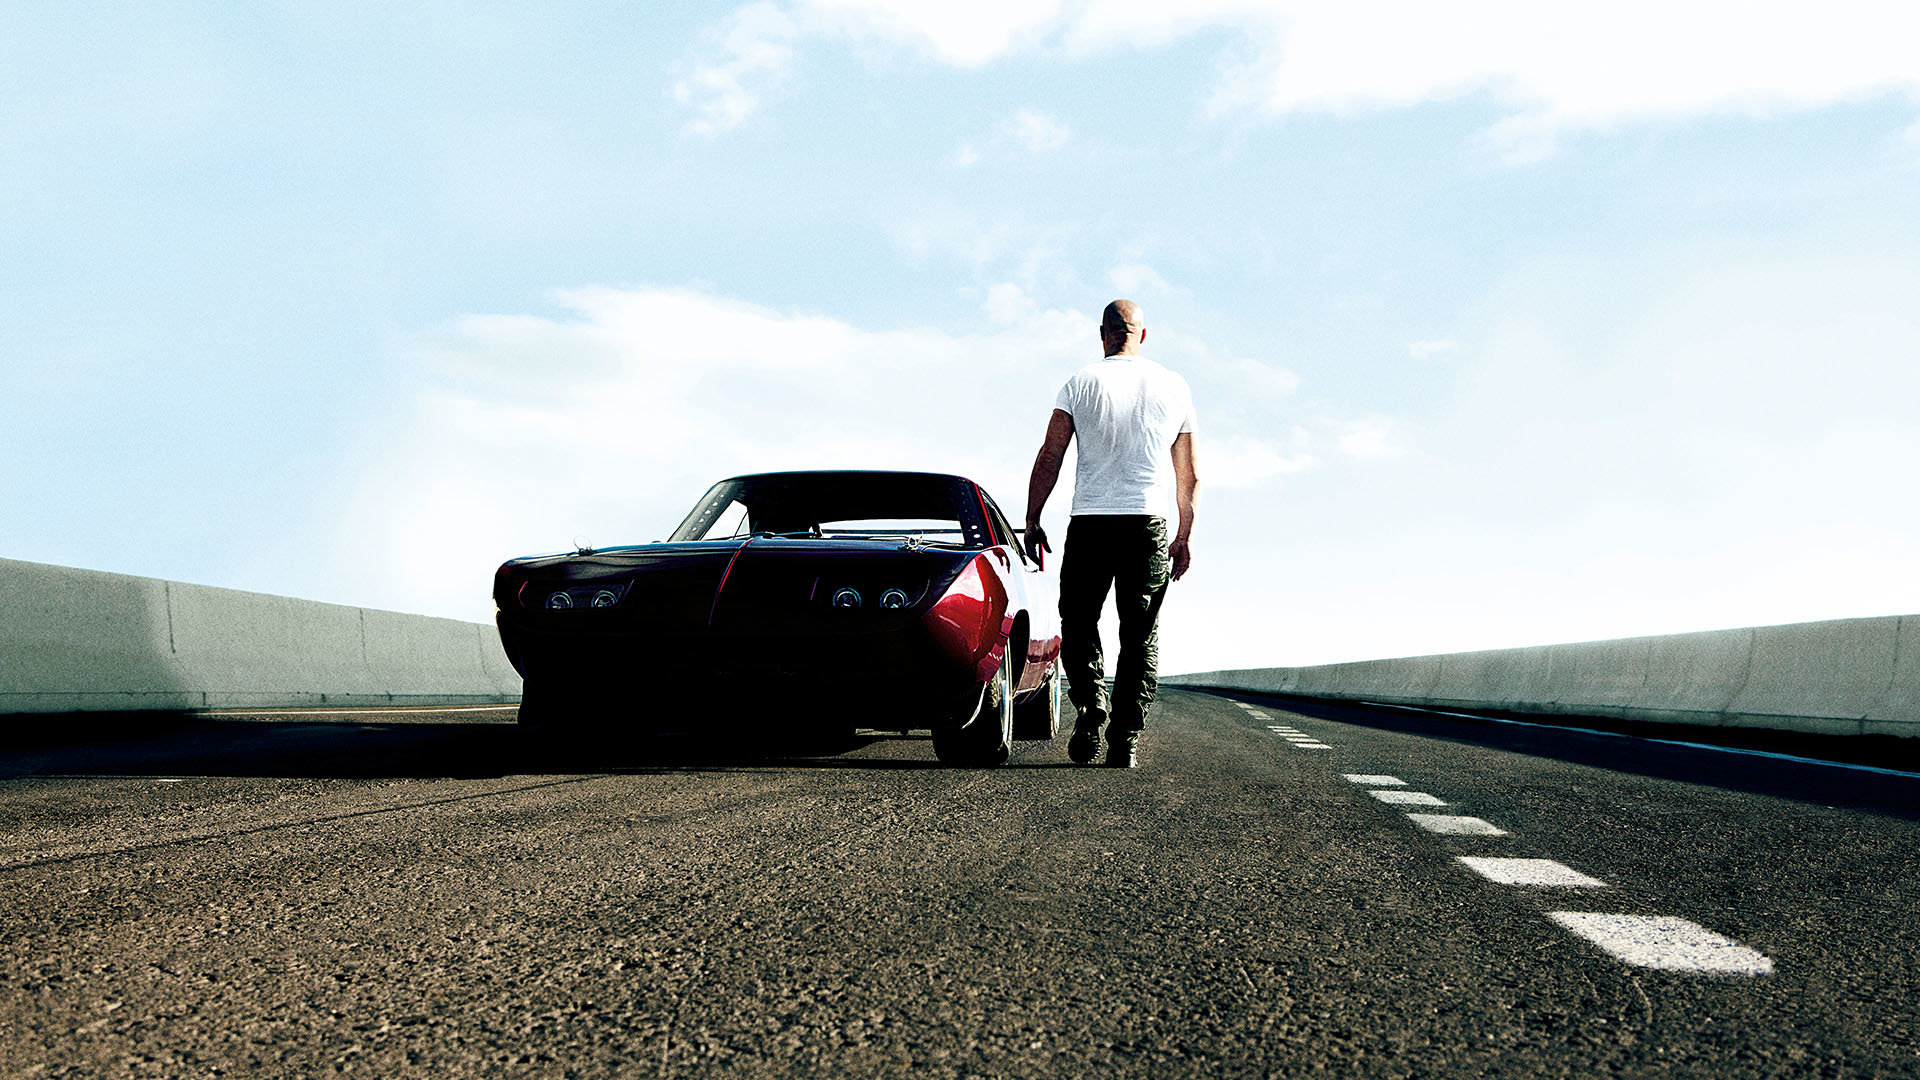 Fast And Furious Hd Wallpaper Background: Fast And Furious Wallpapers 1920x1080 Full HD (1080p